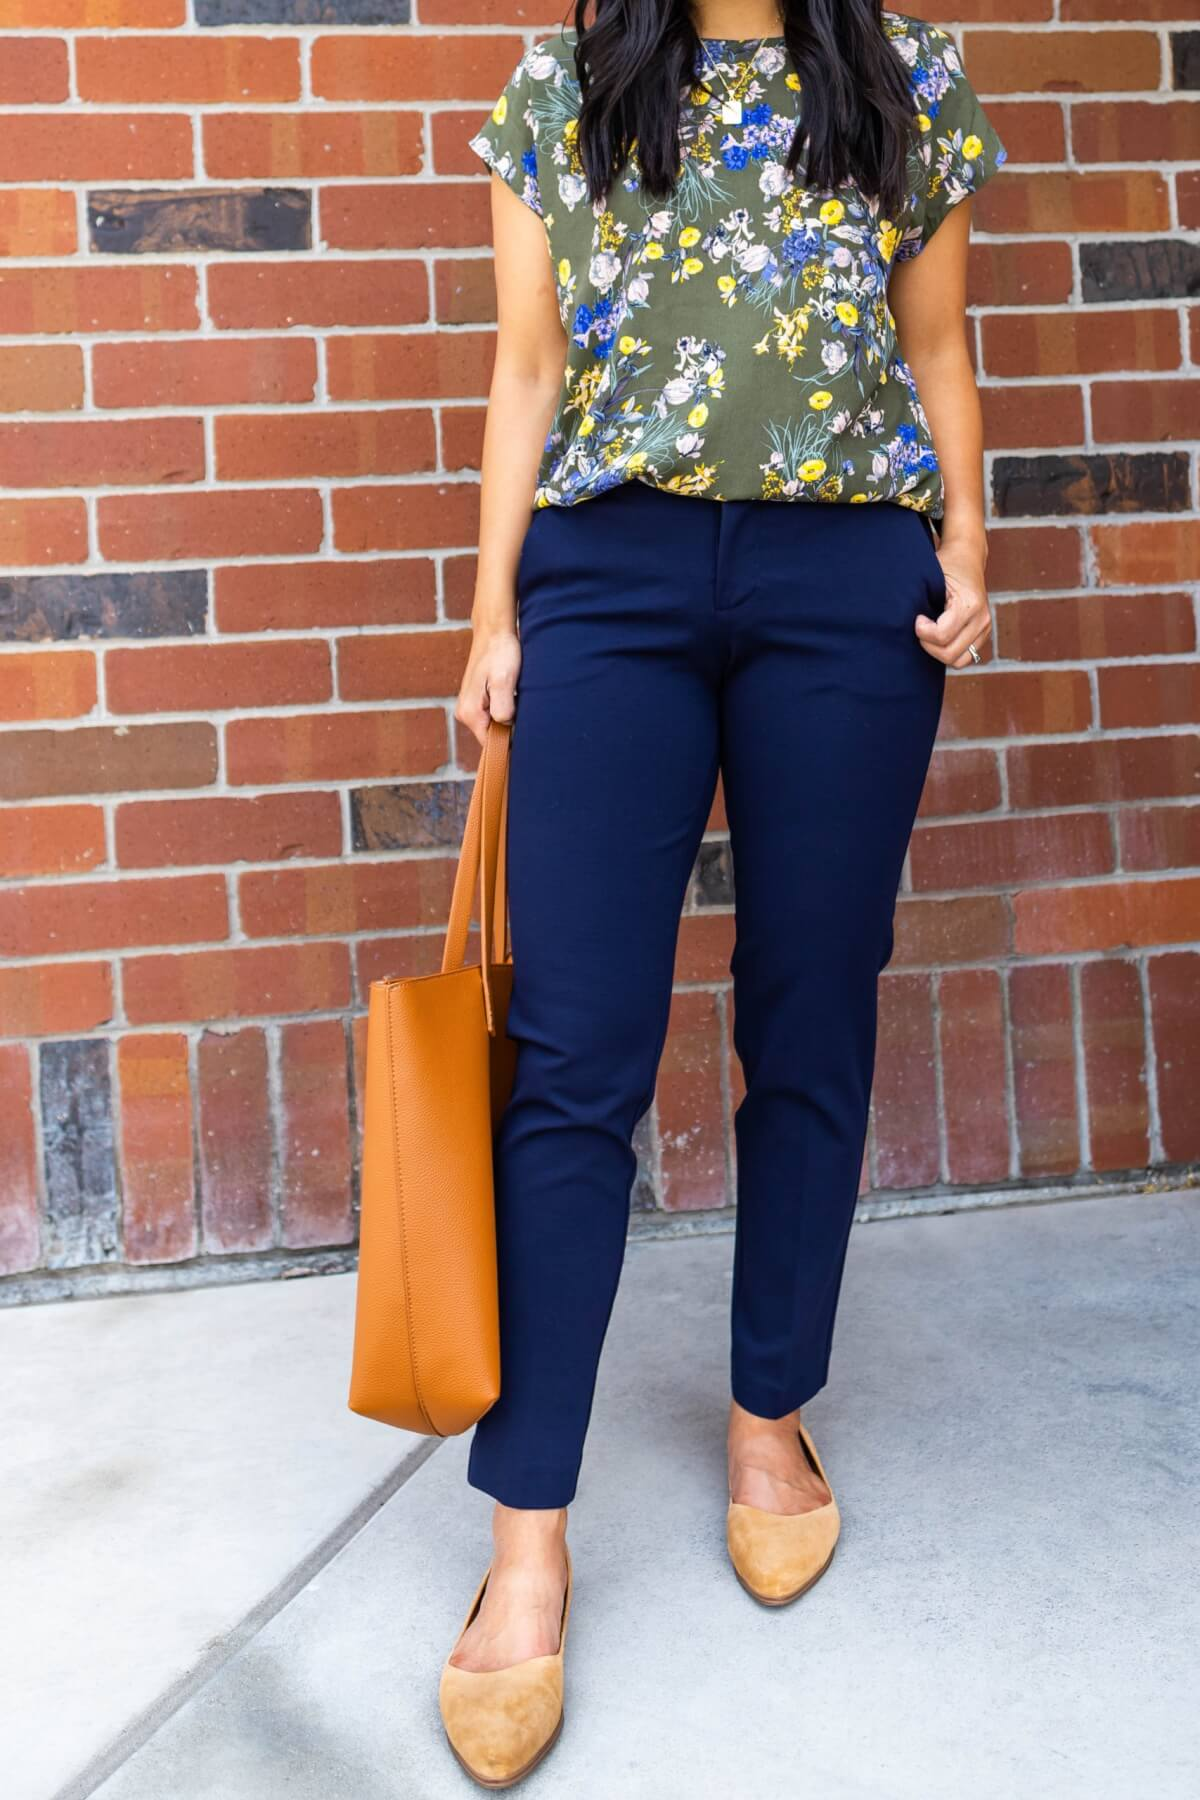 Business Casual Work Outfit for Teachers - Navy Pants + Olive Green Floral Print Top + Tan Flats wearing Liverpool Kelsey Knit Trousers